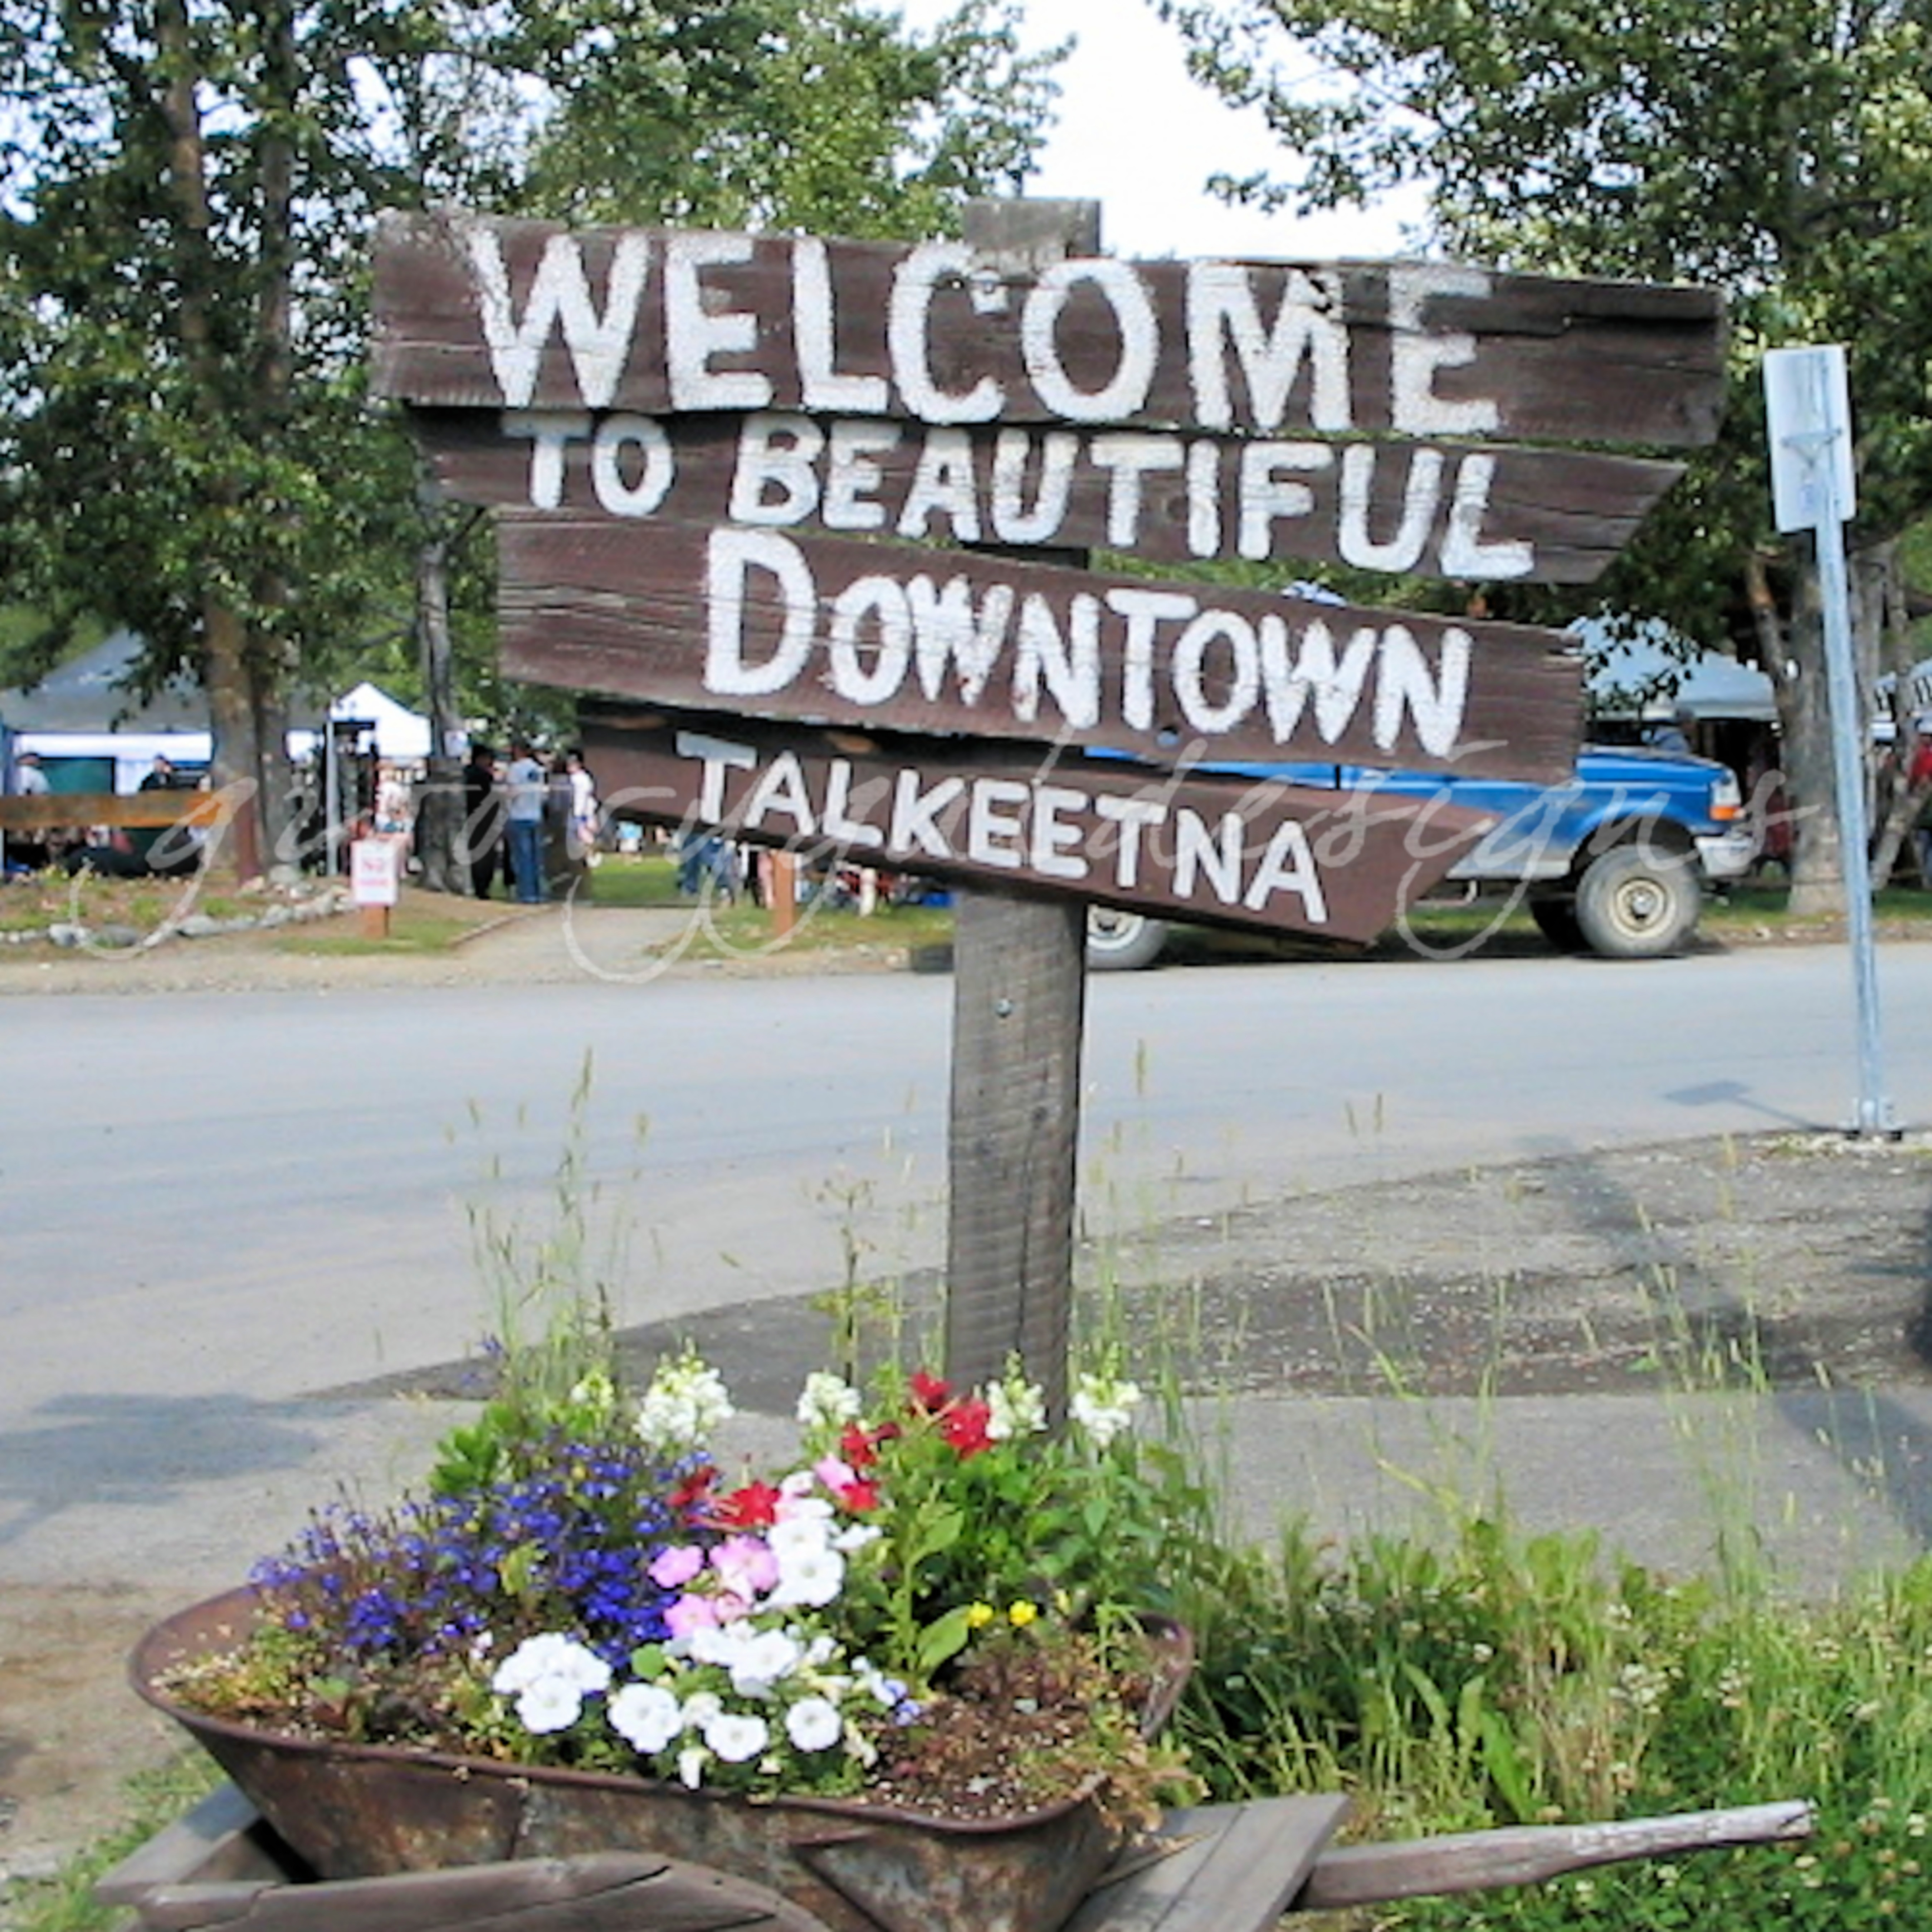 Welcome to talkeetna zfmnst